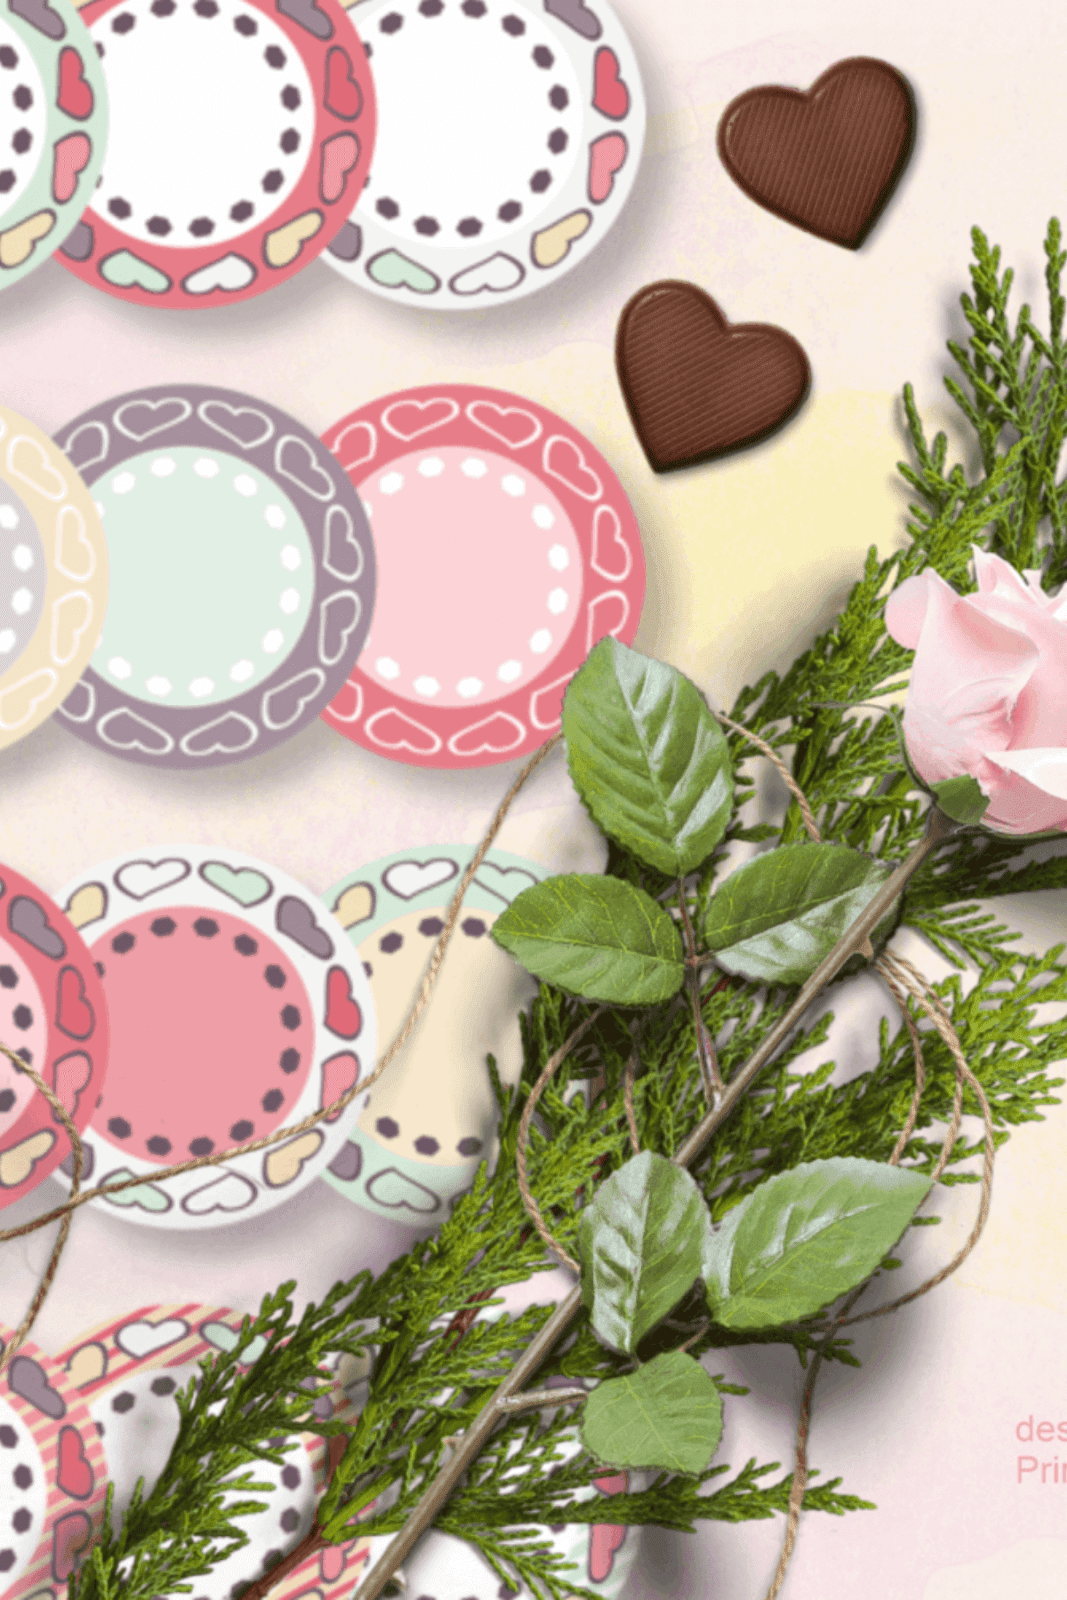 ROUND FRAMES WITH HEARTS